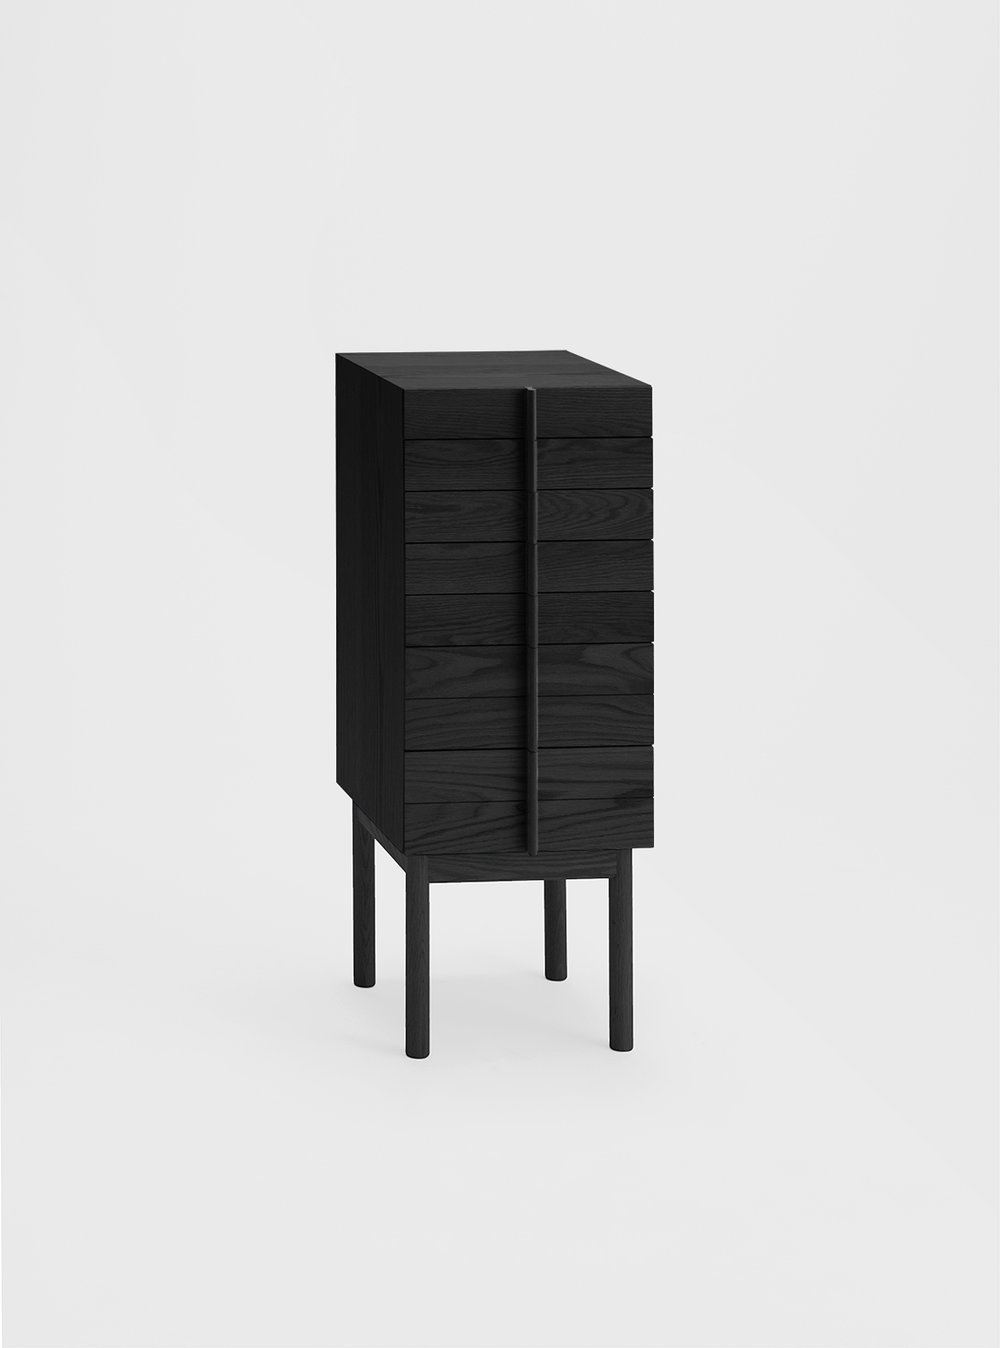 Column Chest designed by Gabriel Tan